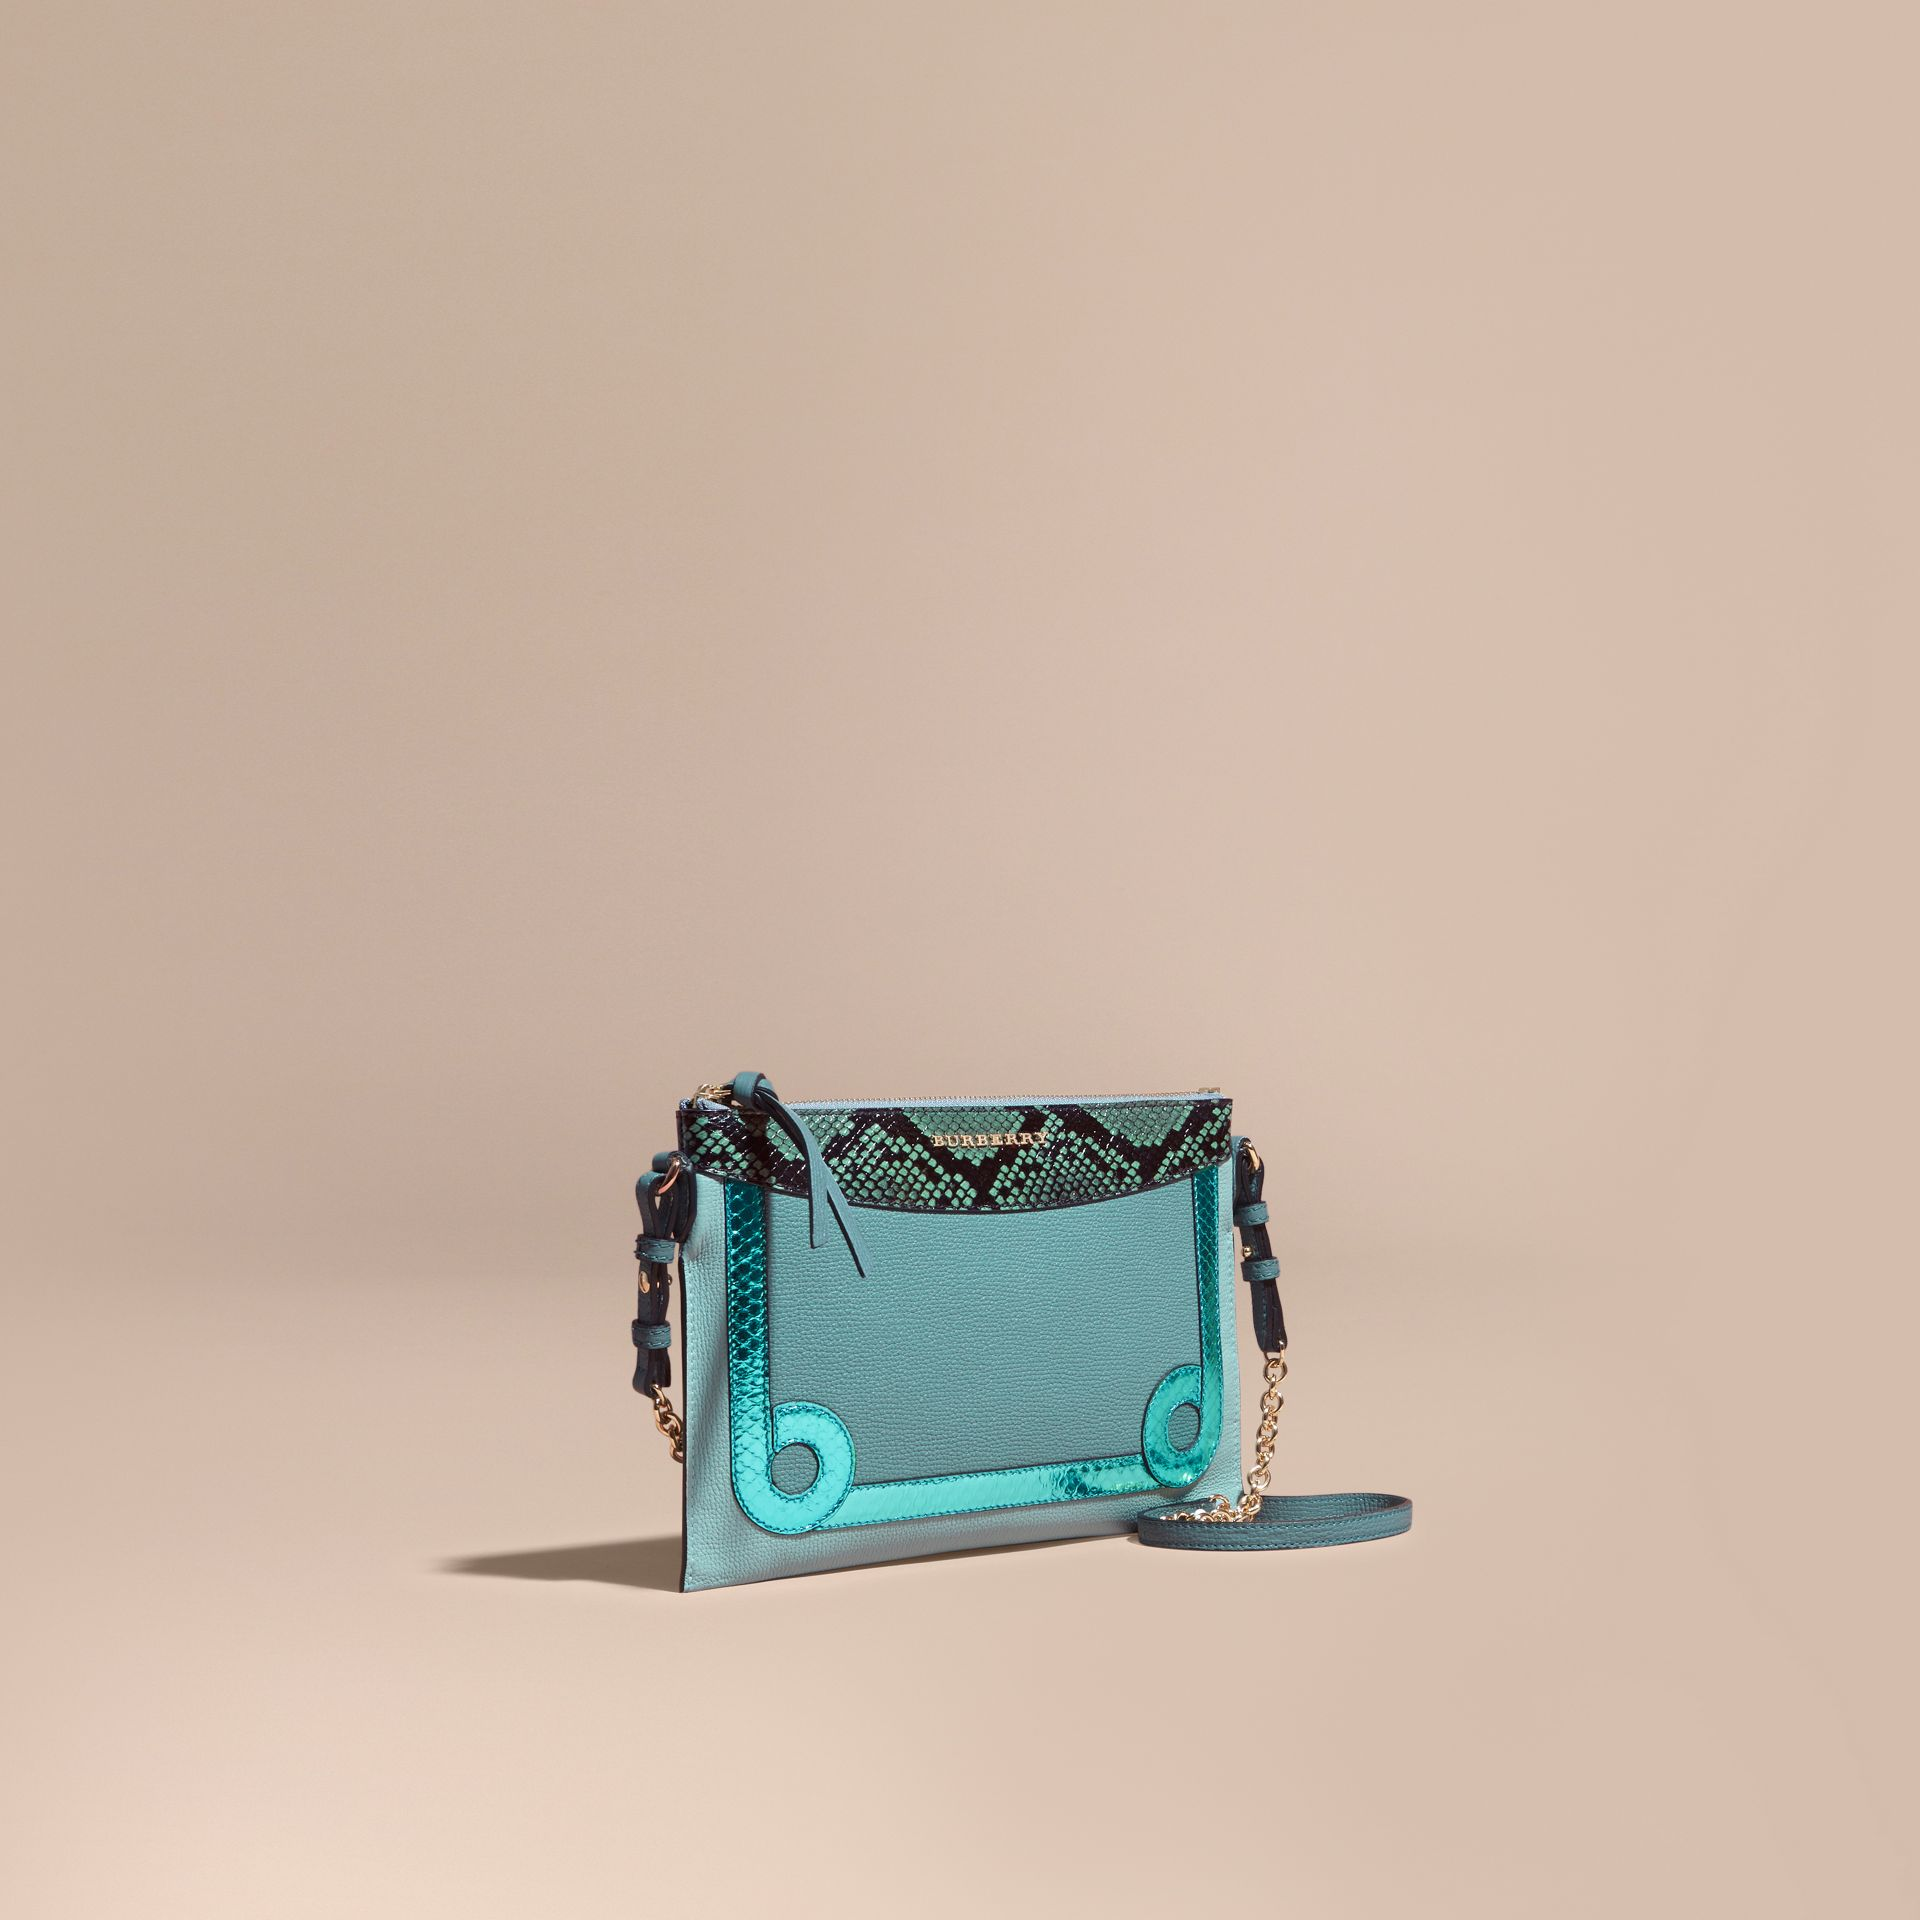 Celadon blue Leather and Snakeskin Clutch Bag Celadon Blue - gallery image 1